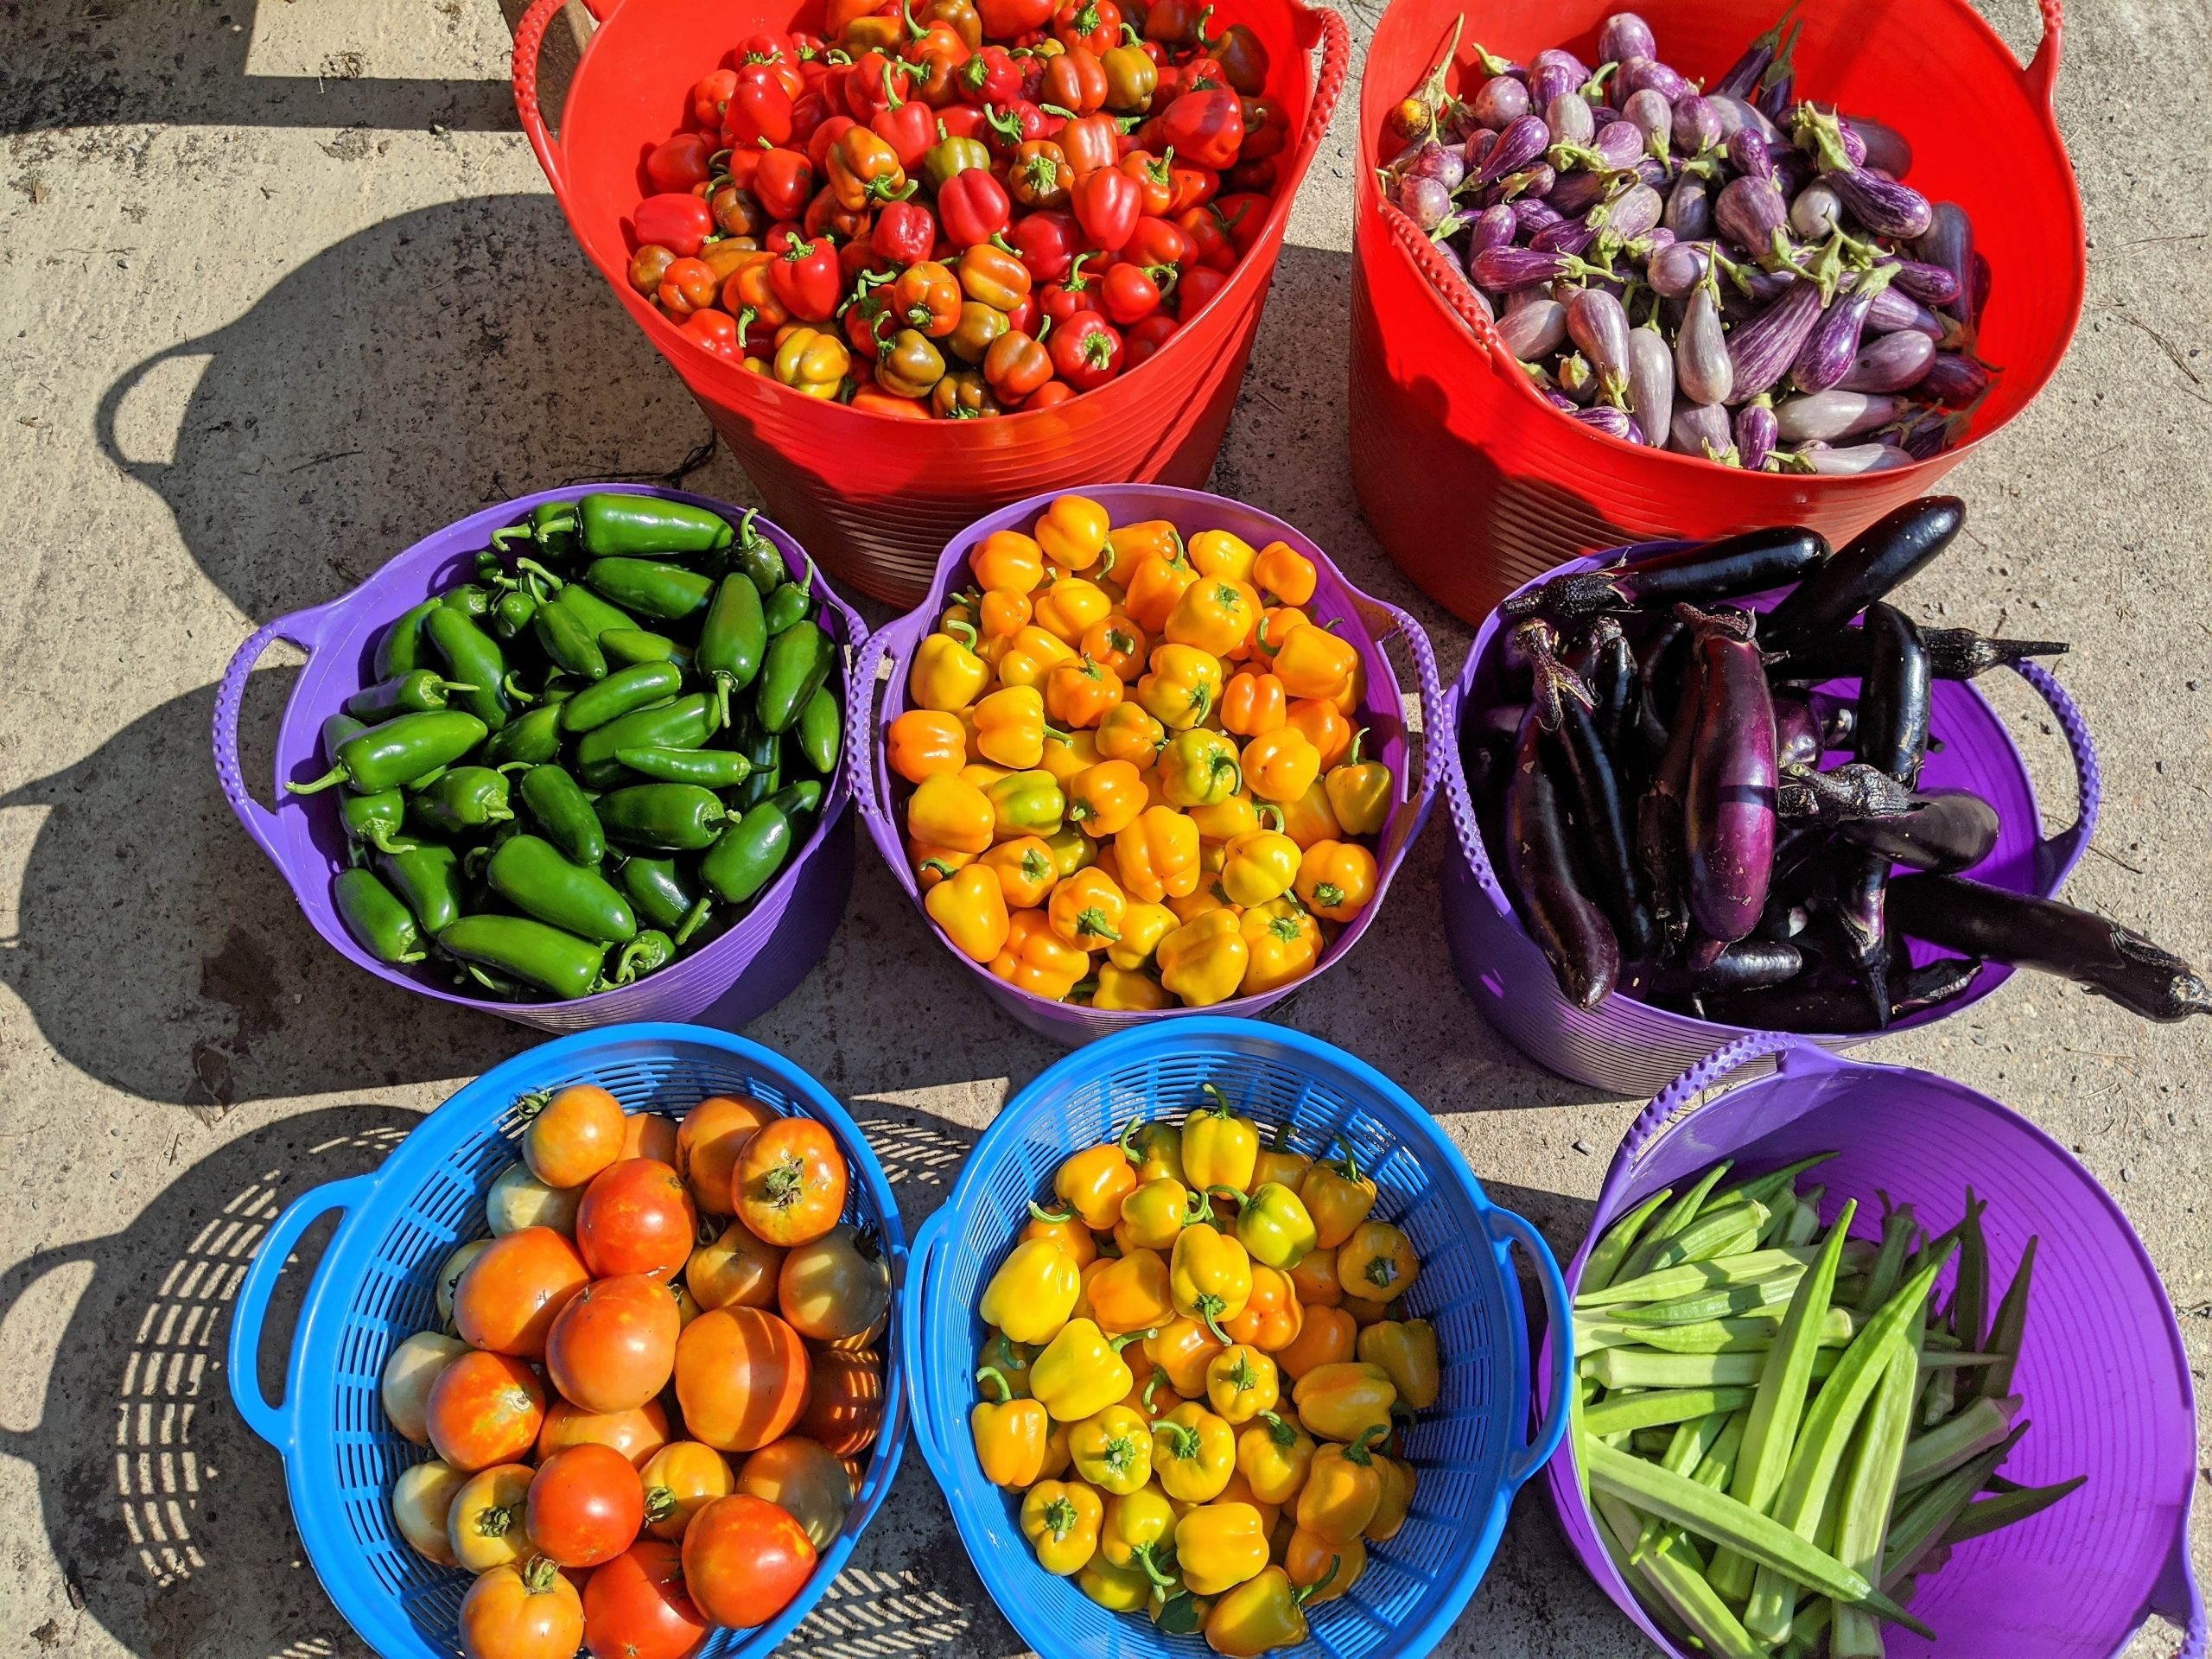 Eight harvest tubs are arranged, each with its own crop: red mini bells, mini eggplant, jalapenos, orange mini bells, Asian eggplant, tomatoes, yellow mini bells, and okra